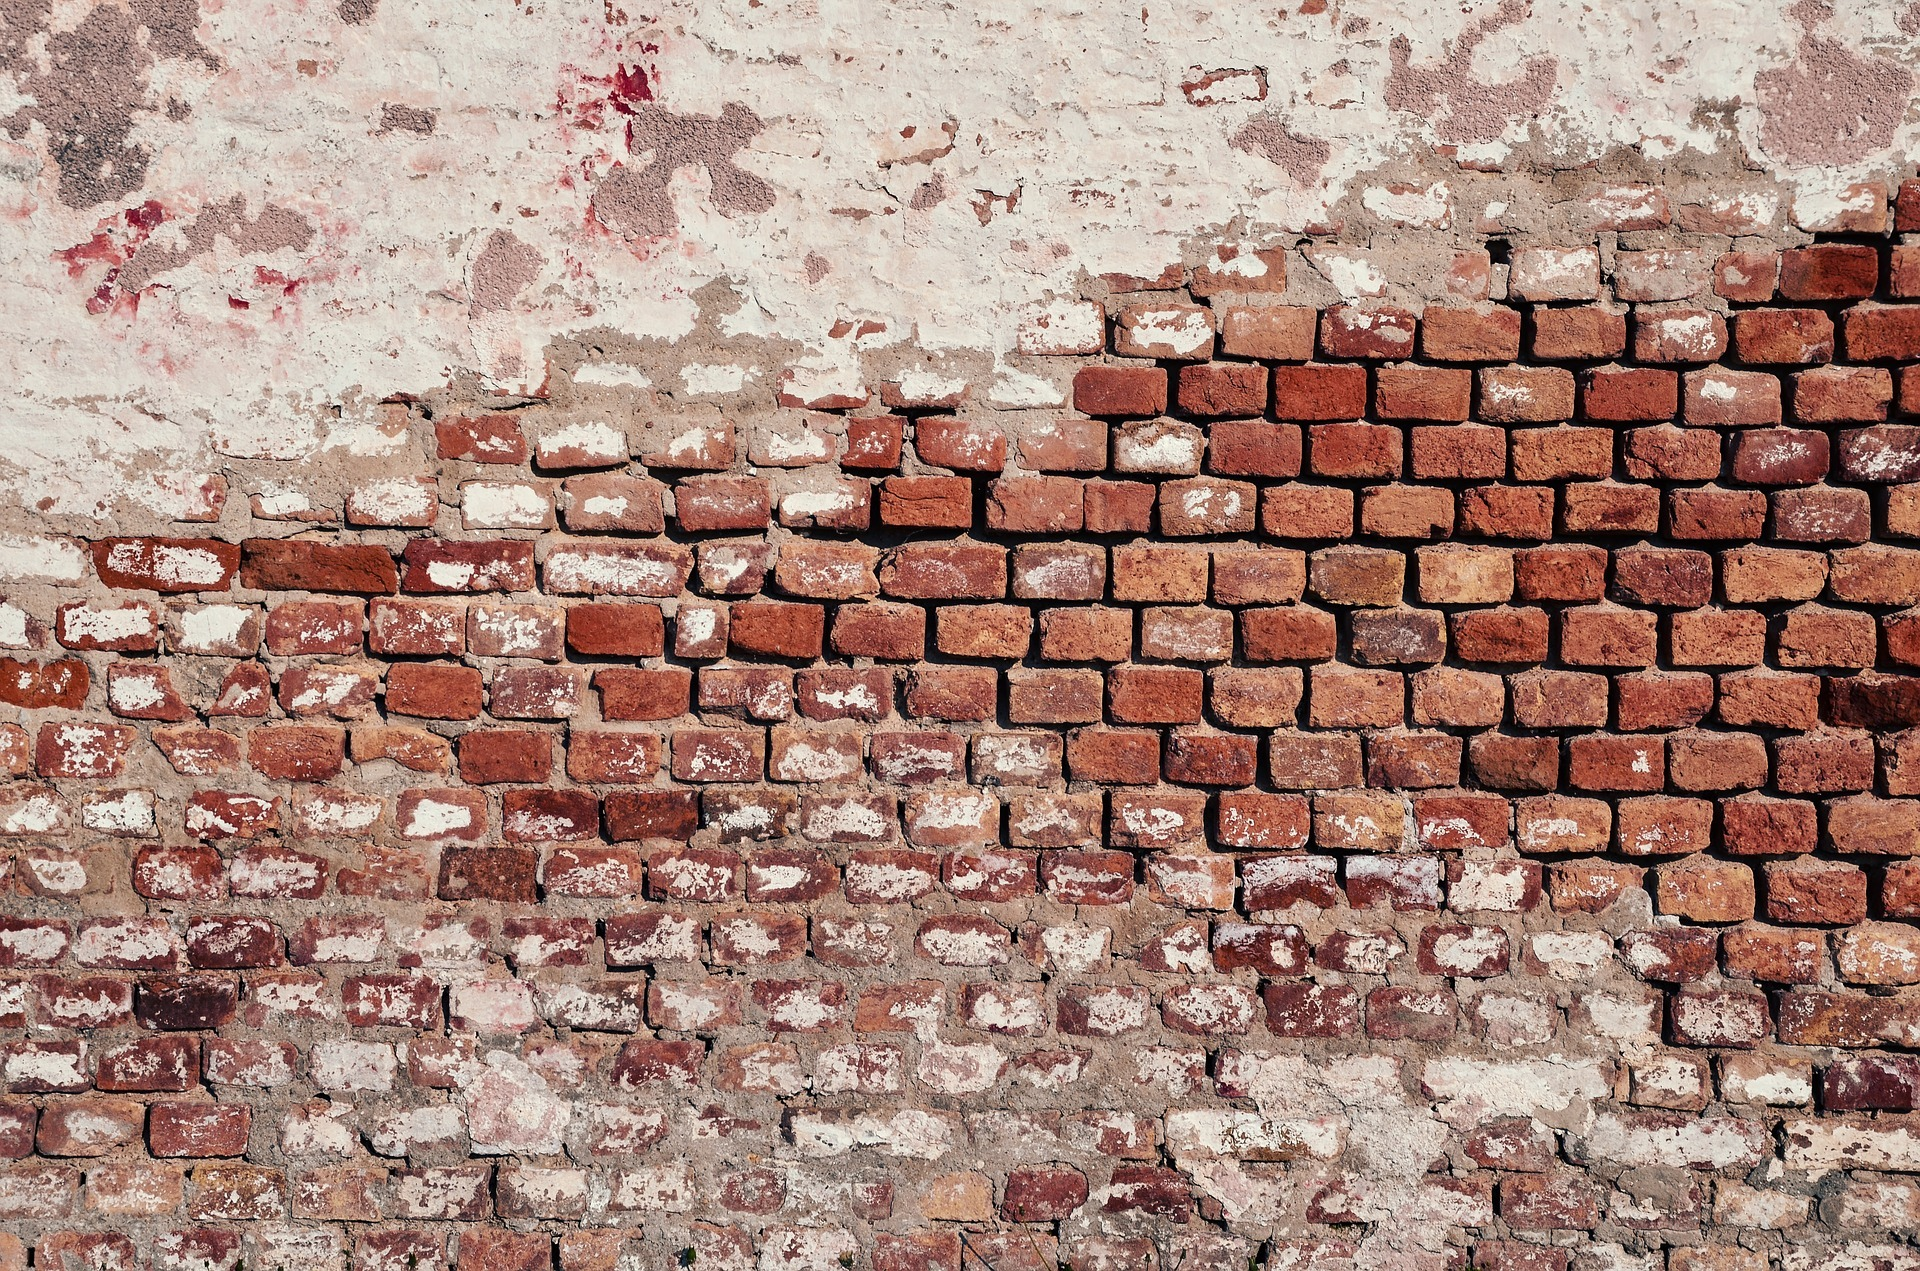 A brick wall with a red color.